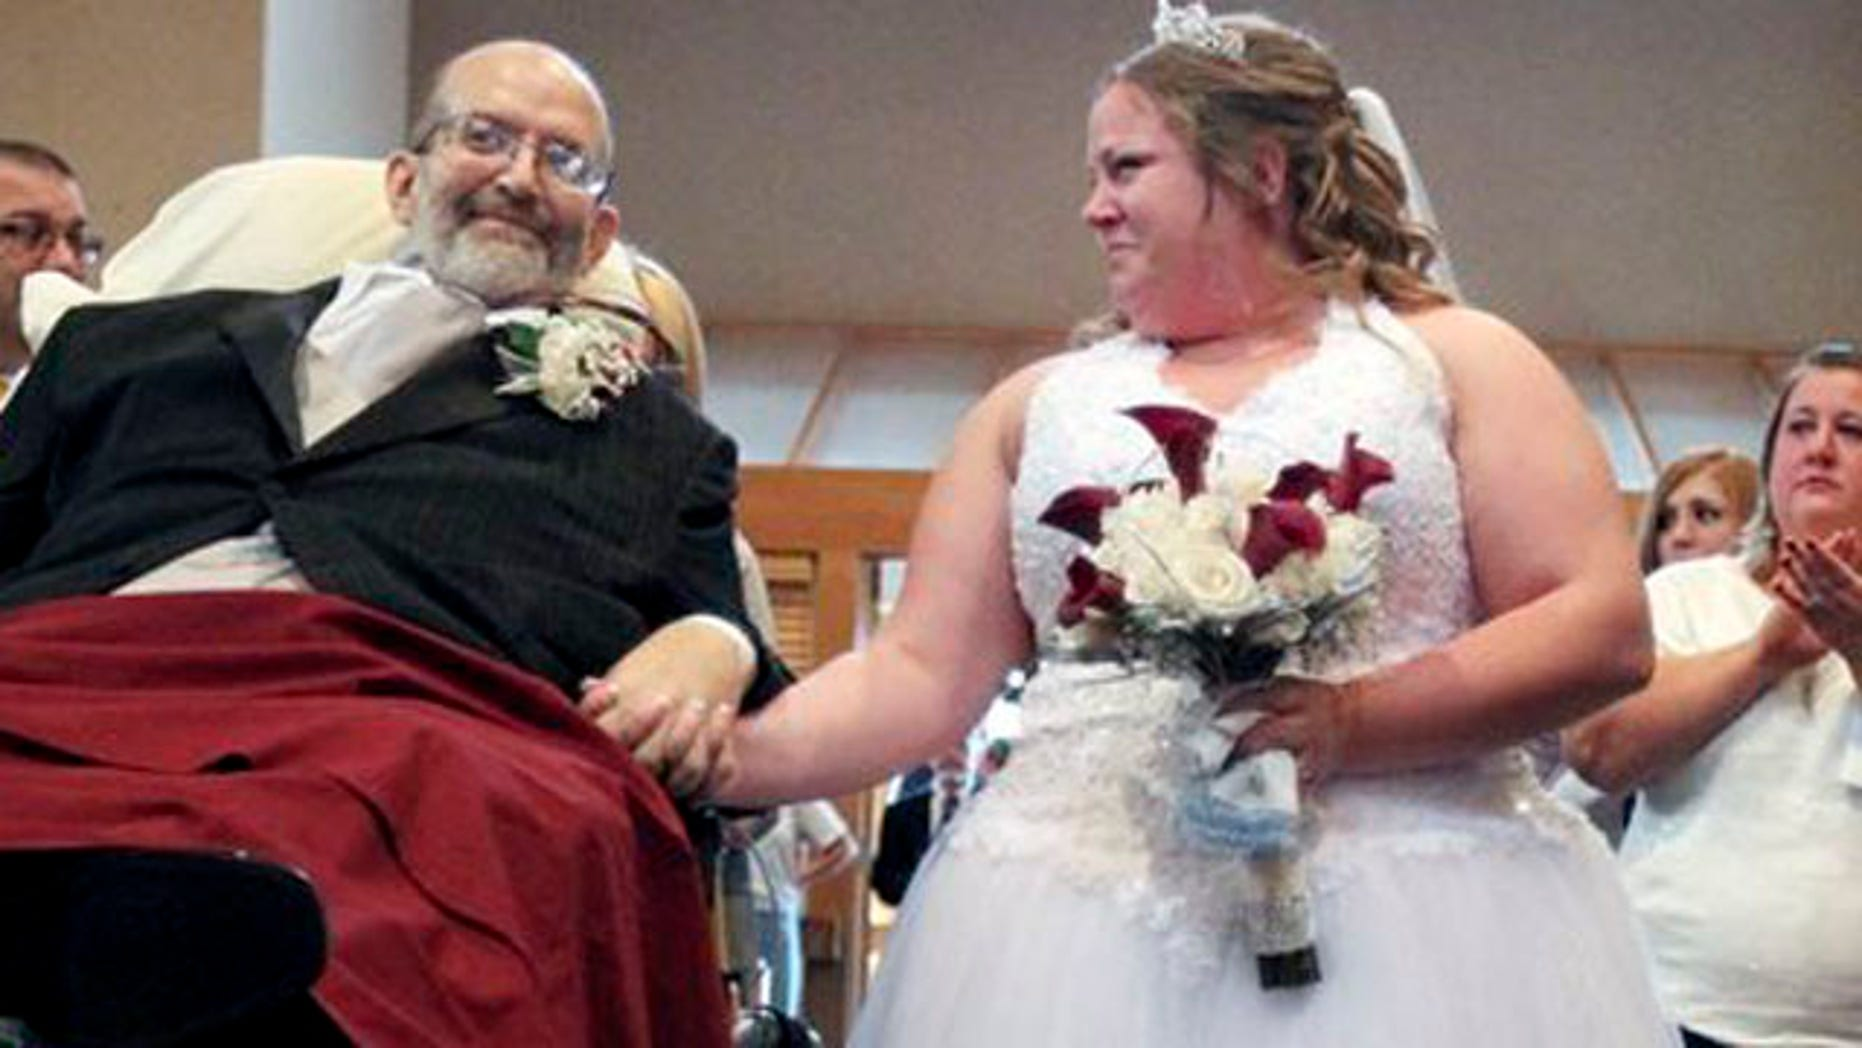 Oct. 12, 2013: Bride Sarah Nagy, right, begins to cry as she is escorted by her father, Scott, down the aisle during her wedding ceremony at First Lutheran Church in Strongsville.